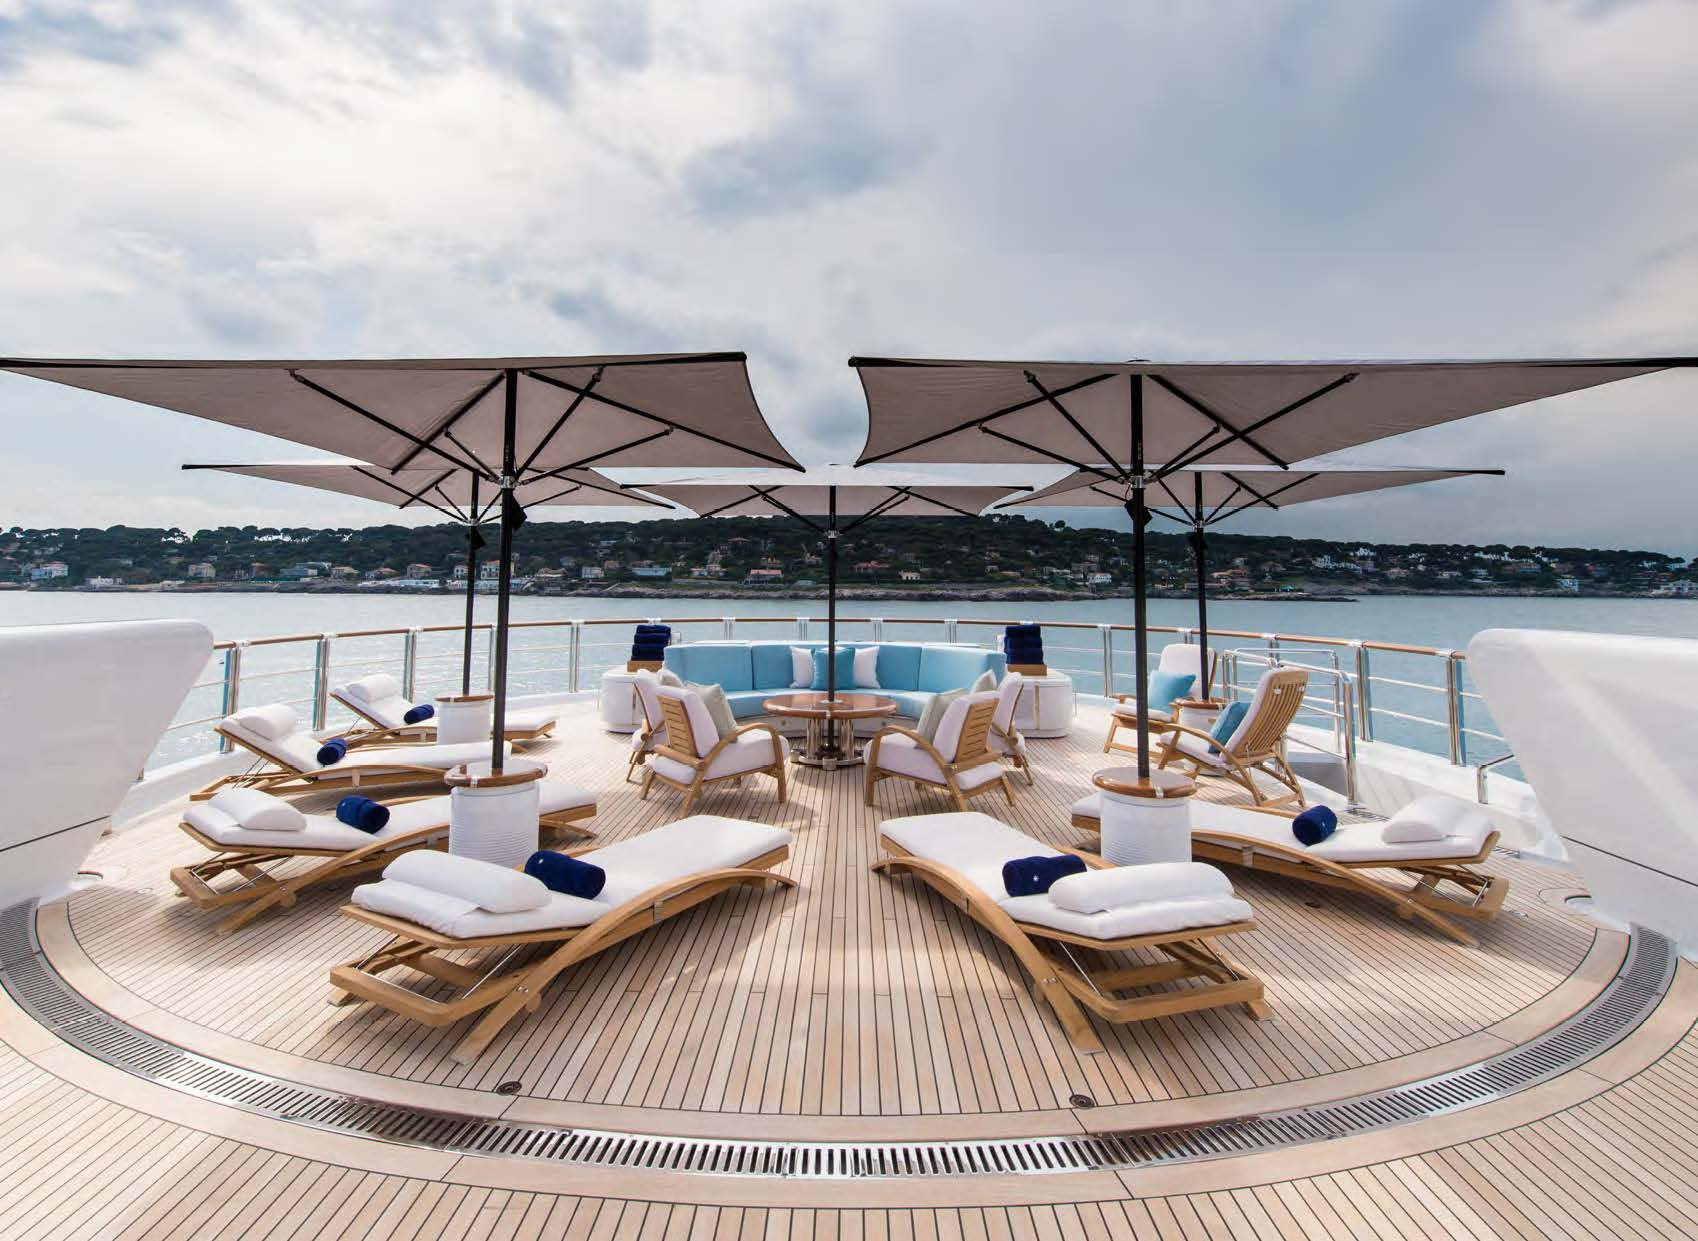 M/Y Nirvana | Yacht details page